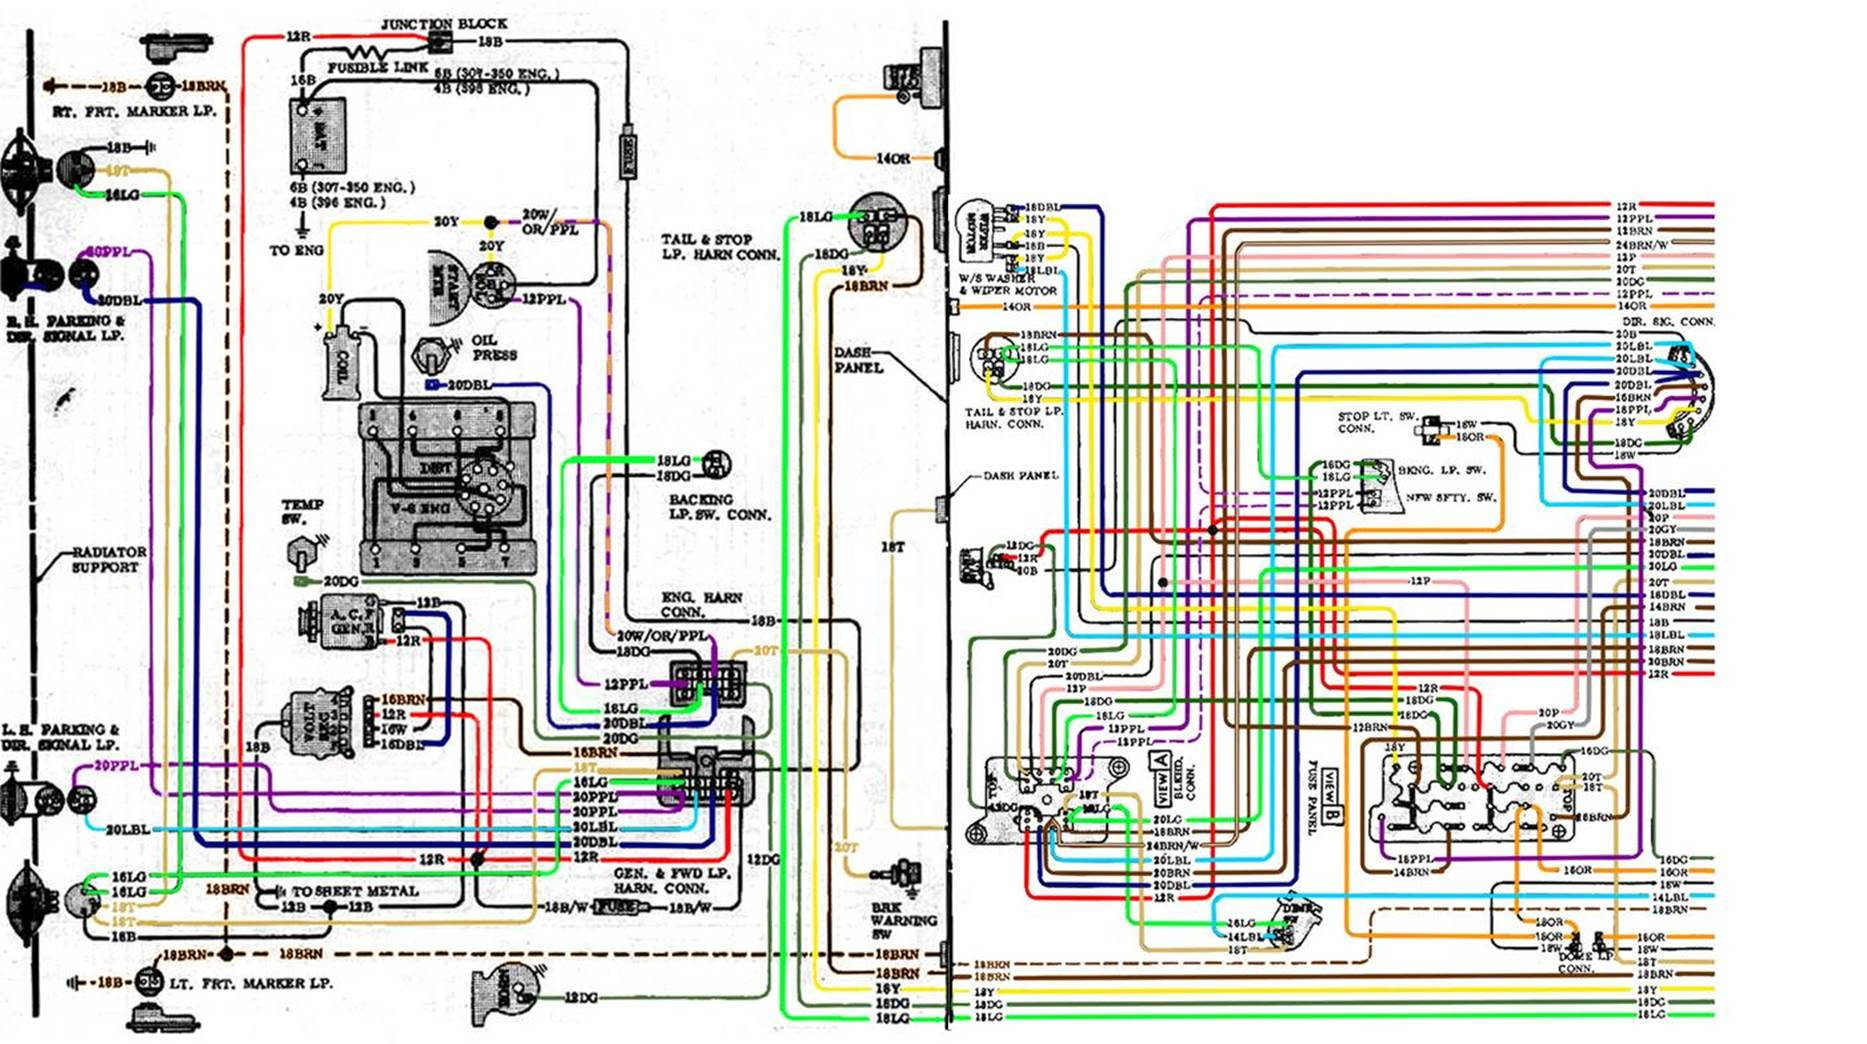 image002 67 72 chevy wiring diagram 67 72 c10 wiring harness at gsmx.co